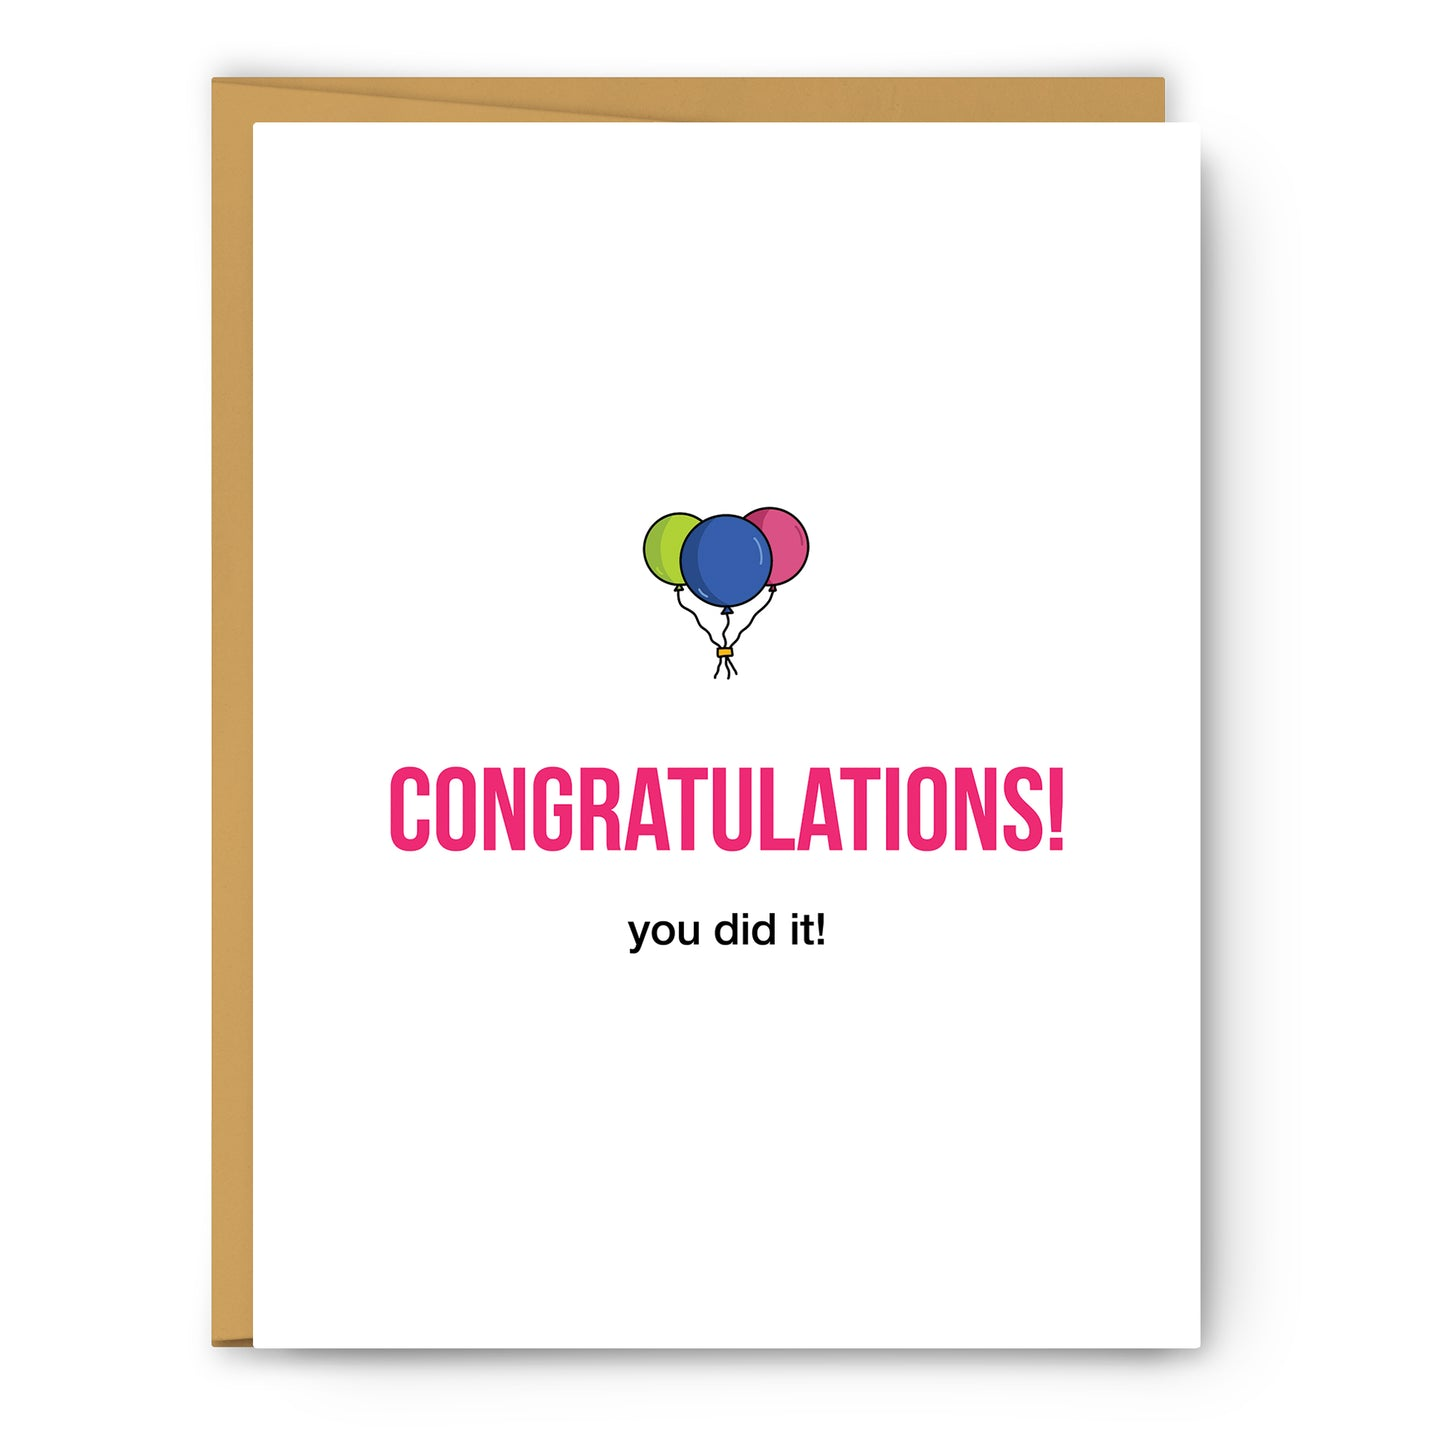 Congratulations Definition Illustration - Unframed Art Print Poster Or Greeting Card